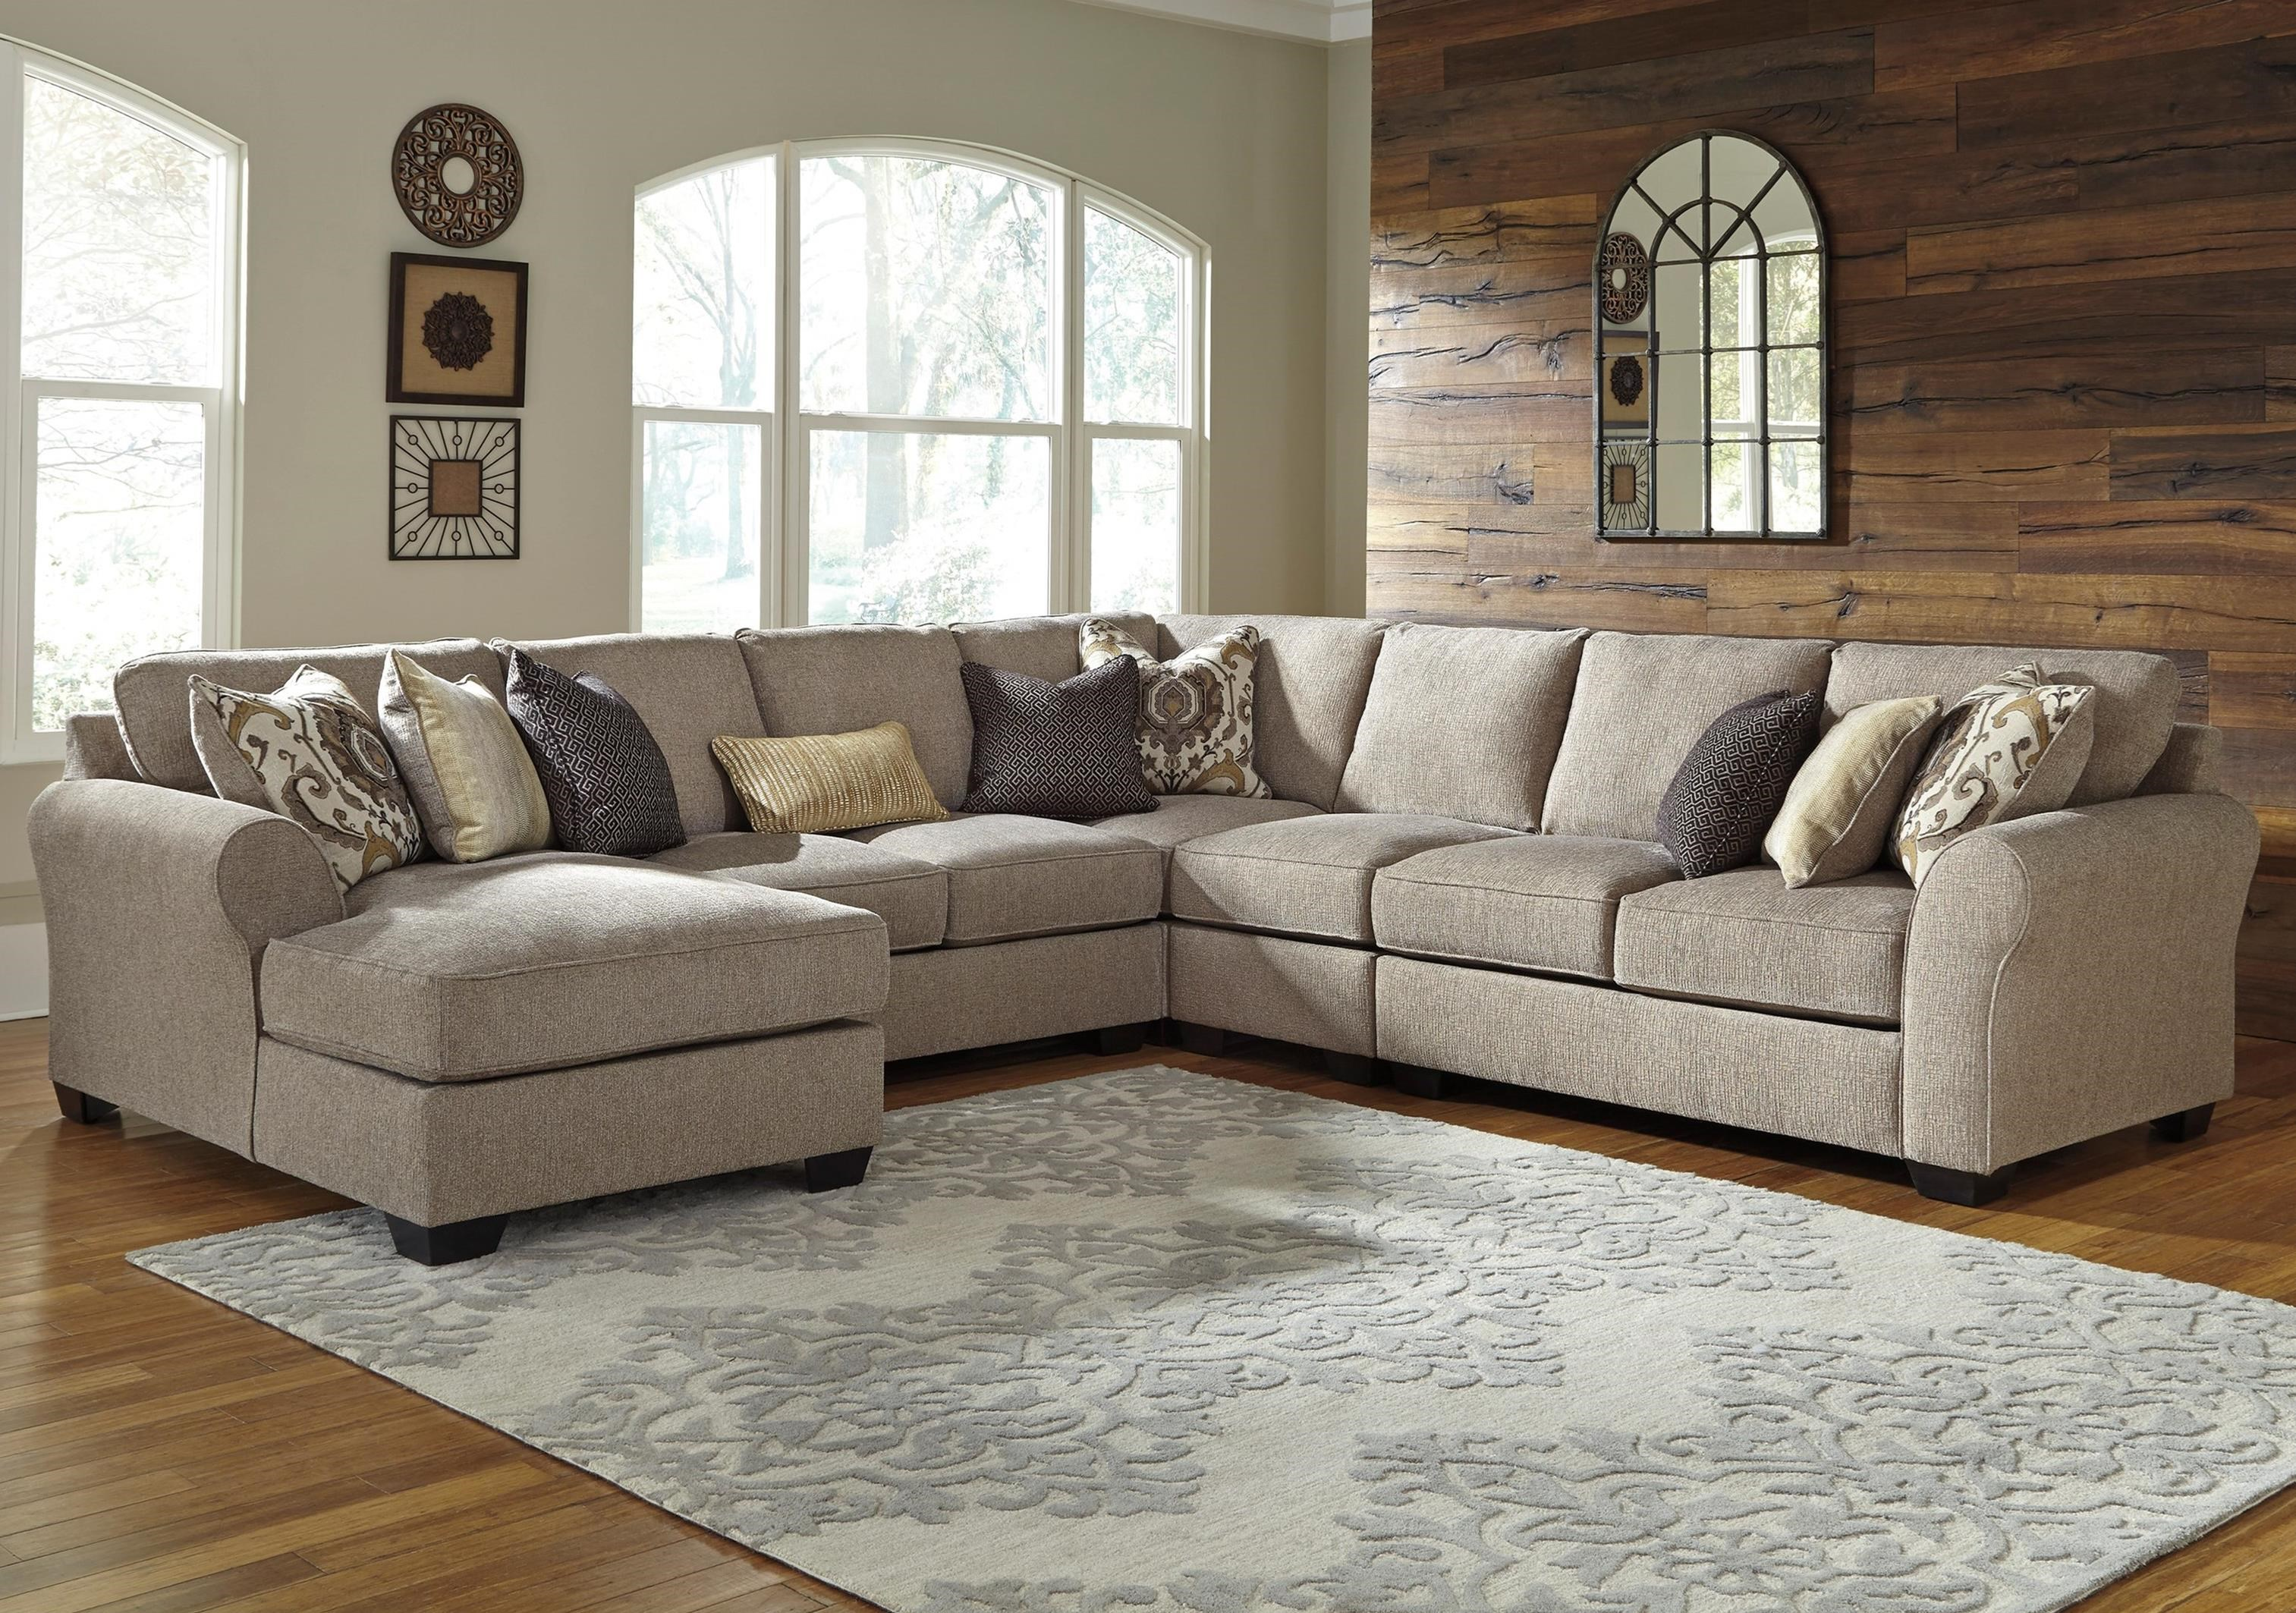 Pantomine 5-Piece Sectional with Left Chaise by Benchcraft at Zak's Warehouse Clearance Center